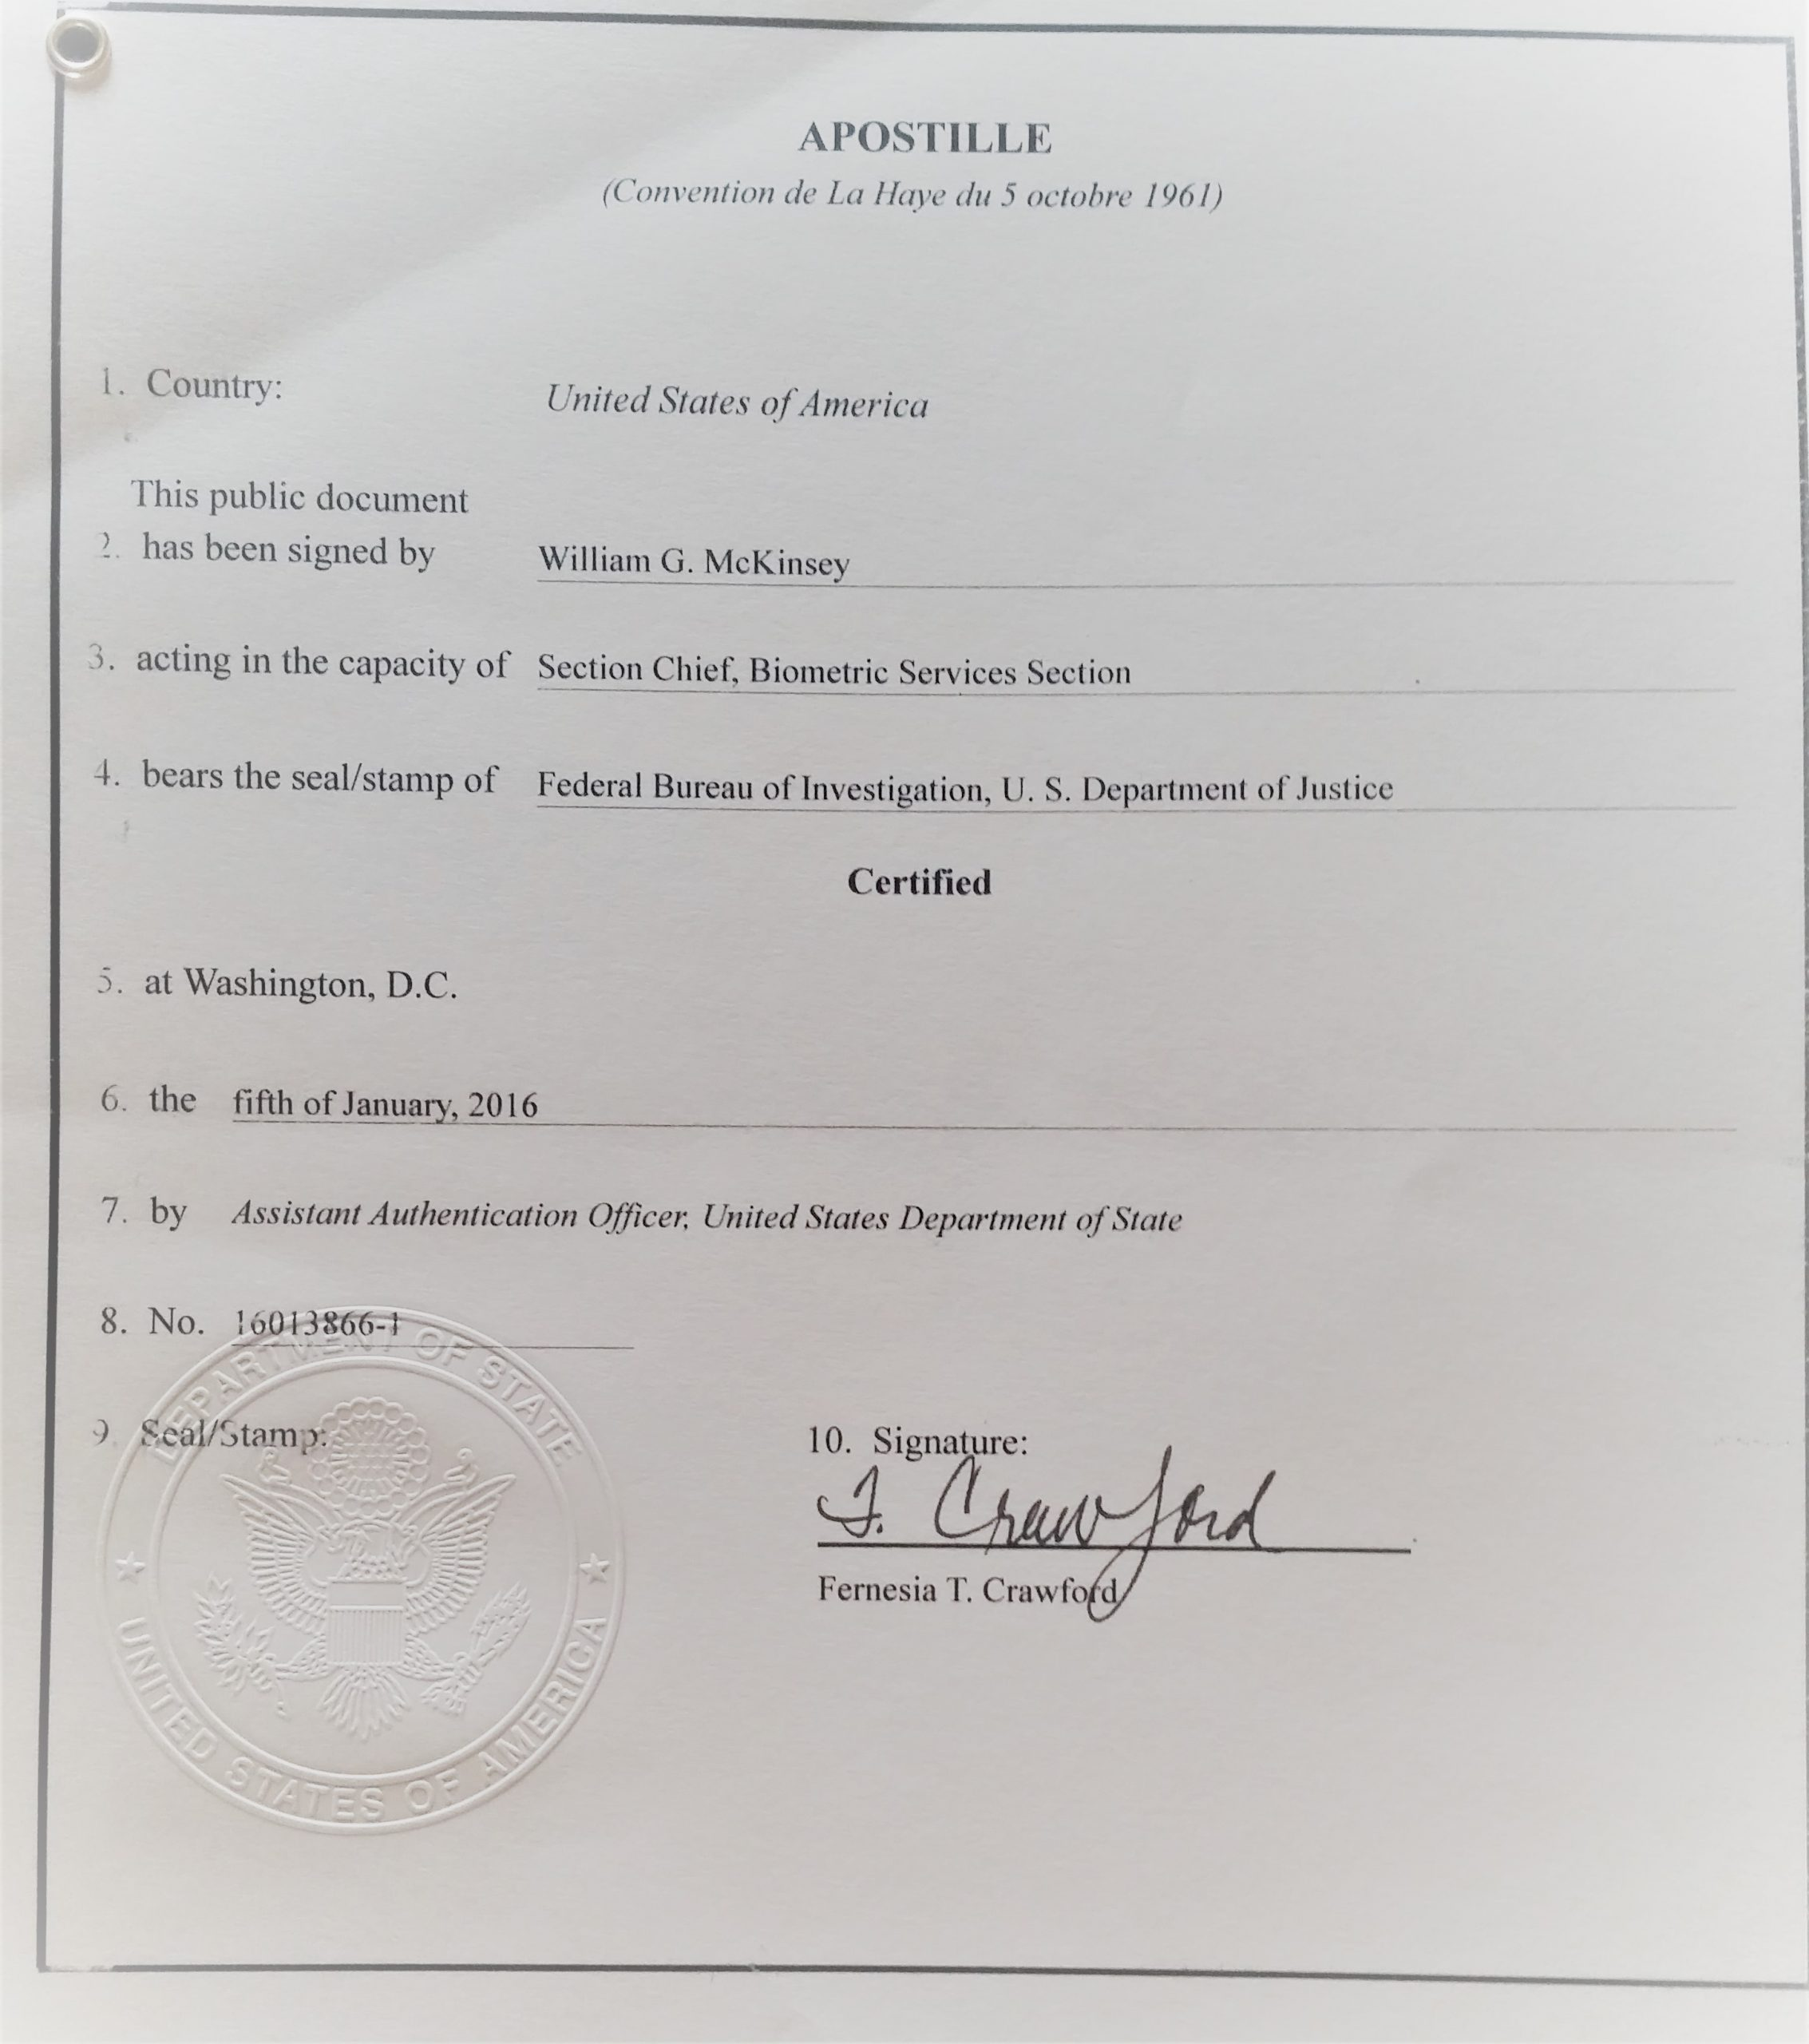 How to Get an Apostille for Your Visa Application